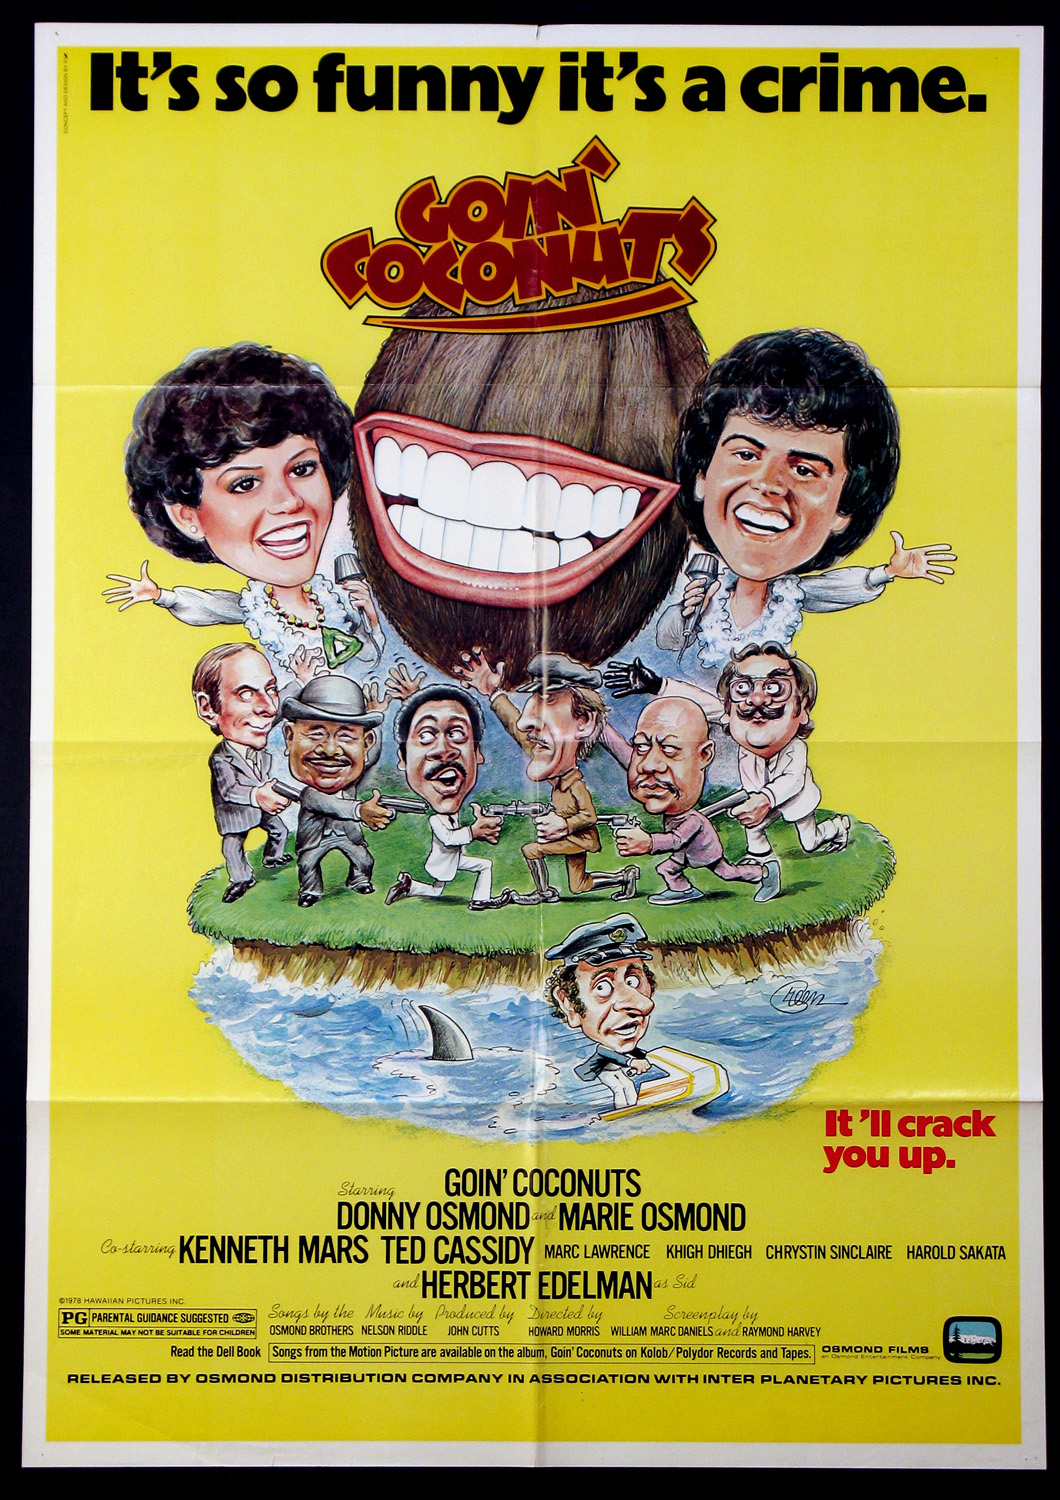 GOIN' COCONUTS (Going Coconuts) @ FilmPosters.com